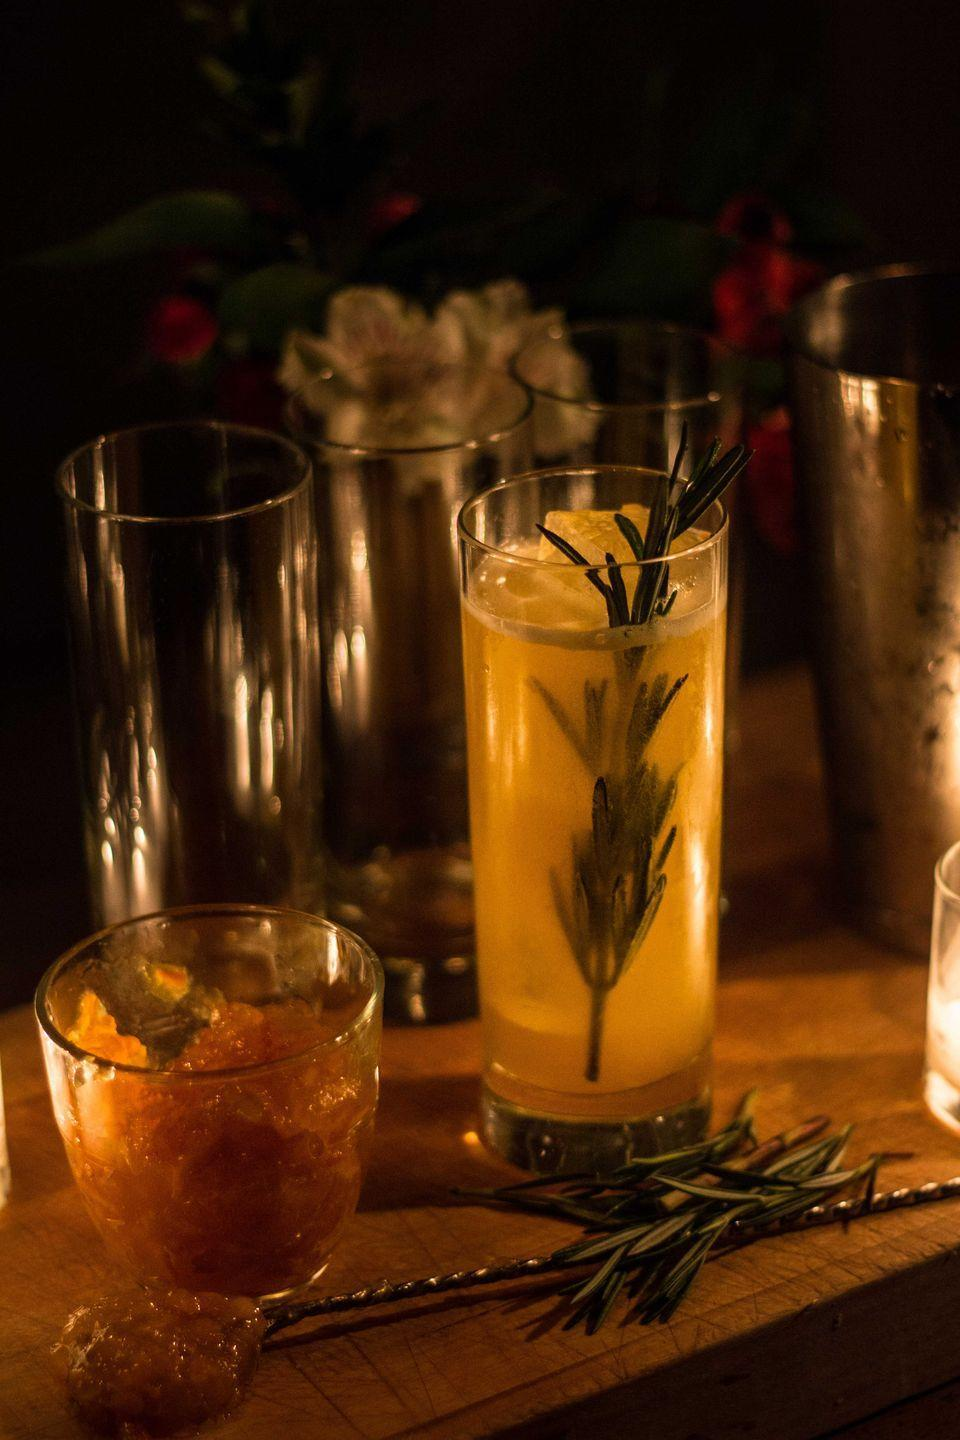 """<p><strong>Ingredients</strong></p><p>1.25 oz vodka<br>1.5 oz cider<br>.75 oz ginger liqueur<br>2 tablespoons of pumpkin jam or puree<br>.25 oz honey<br>.75 oz lemon juice</p><p><strong>Instructions</strong></p><p>Build all ingredients into a shaker, fill with ice. Shake and strain into a highball filled with ice and garnish with a flamed rosemary sprig.</p><p><em>From <a href=""""http://www.thethirdmannyc.com"""" rel=""""nofollow noopener"""" target=""""_blank"""" data-ylk=""""slk:The Third Man"""" class=""""link rapid-noclick-resp"""">The Third Man</a>, NYC</em></p>"""